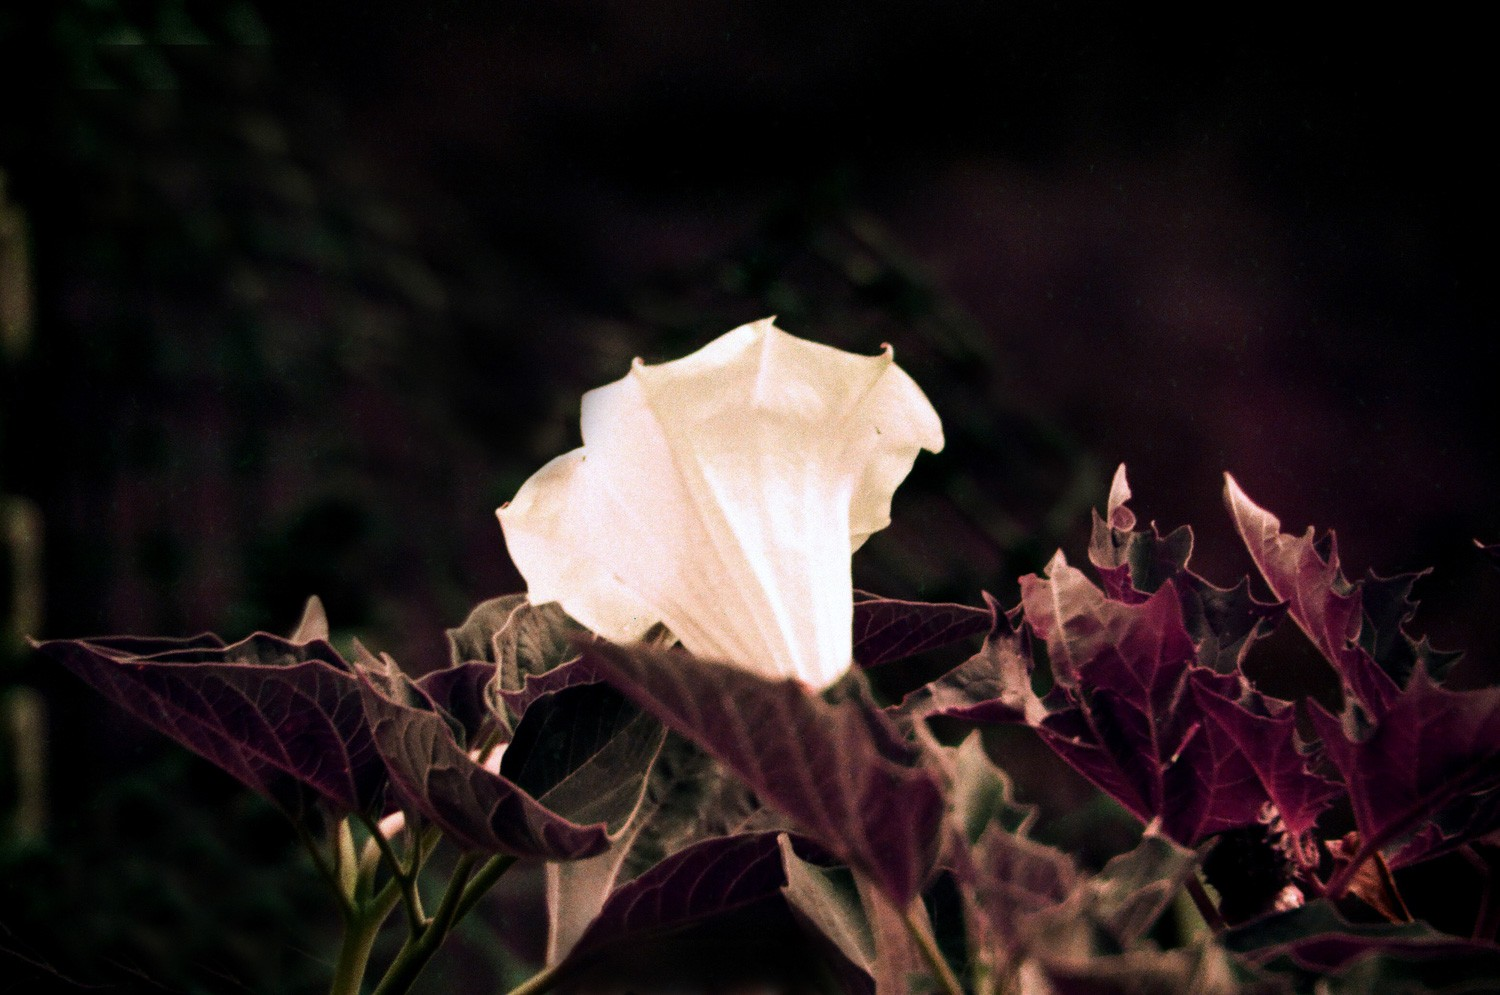 LomoChrome Purple XR 100-400 - Datura